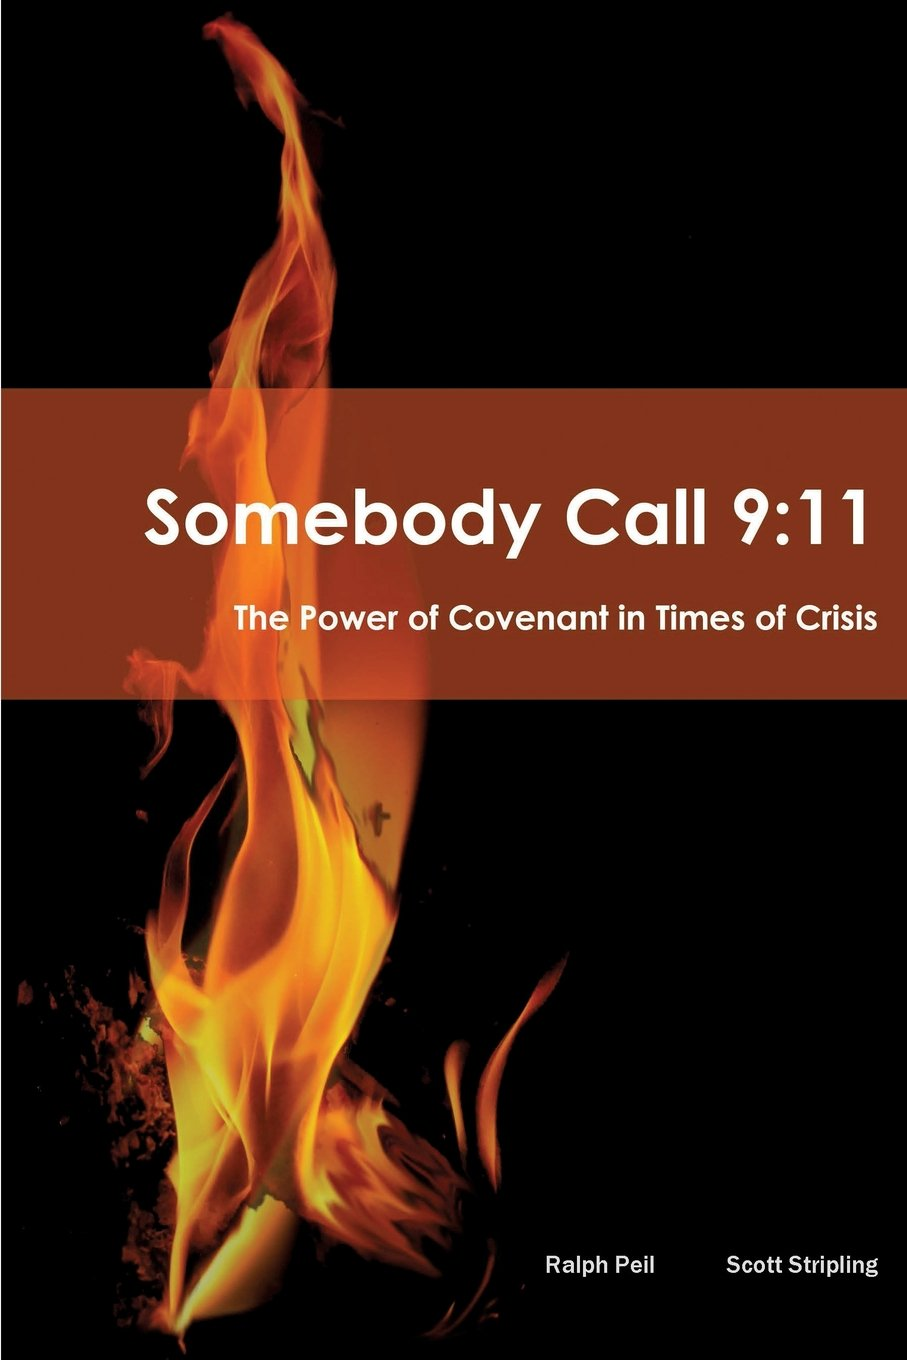 Somebody Call 9:11, by Ralph Peil and Scott Stripling